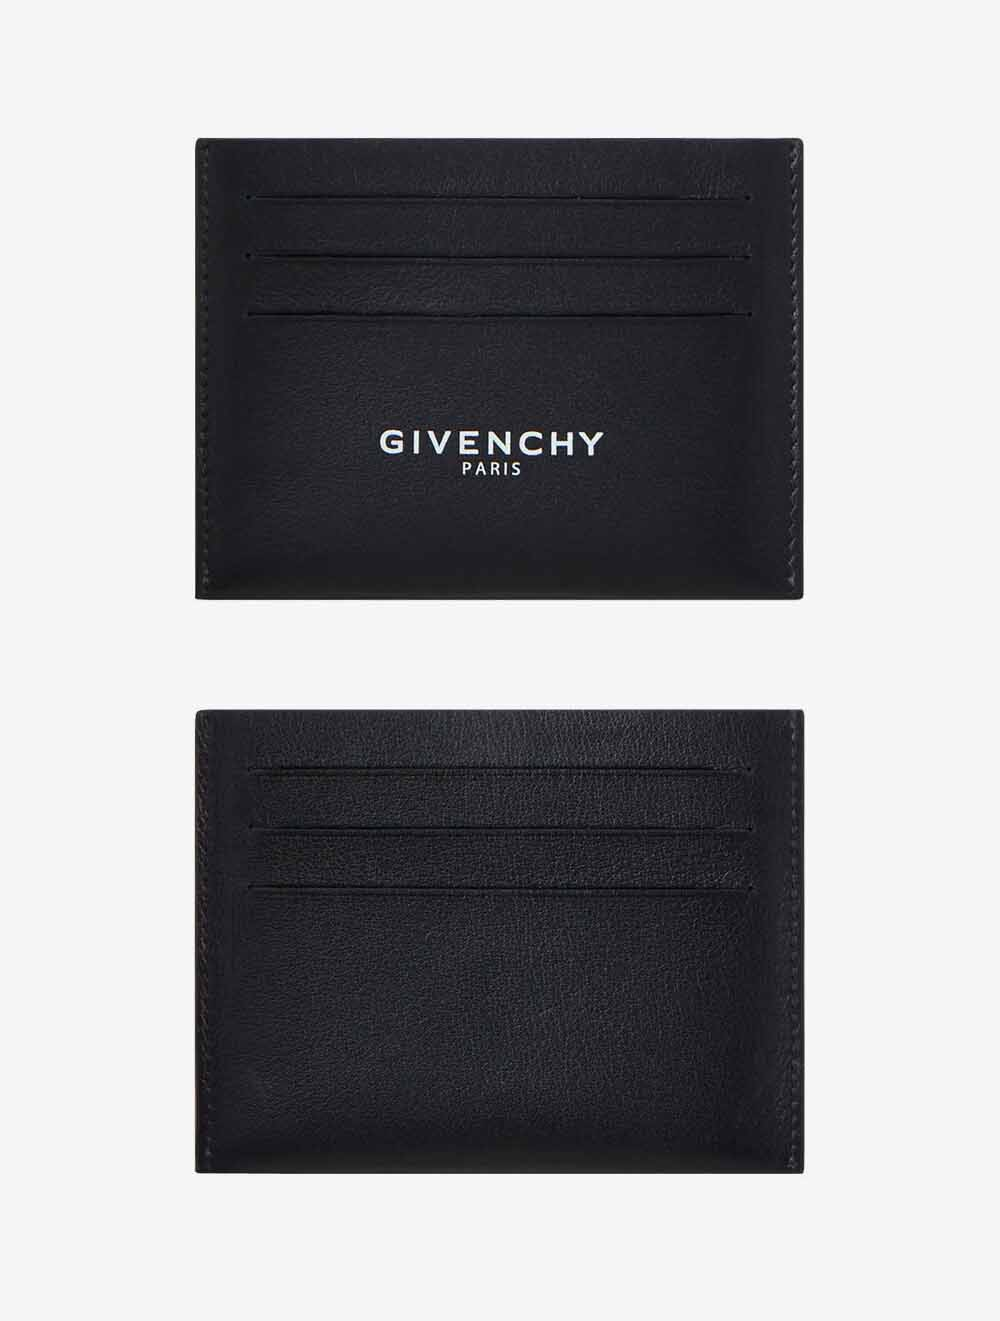 The-best-luxury-gifts-for-men-GIVENCHY-PARIS-Black-CARD-HOLDER-IN-LEATHER